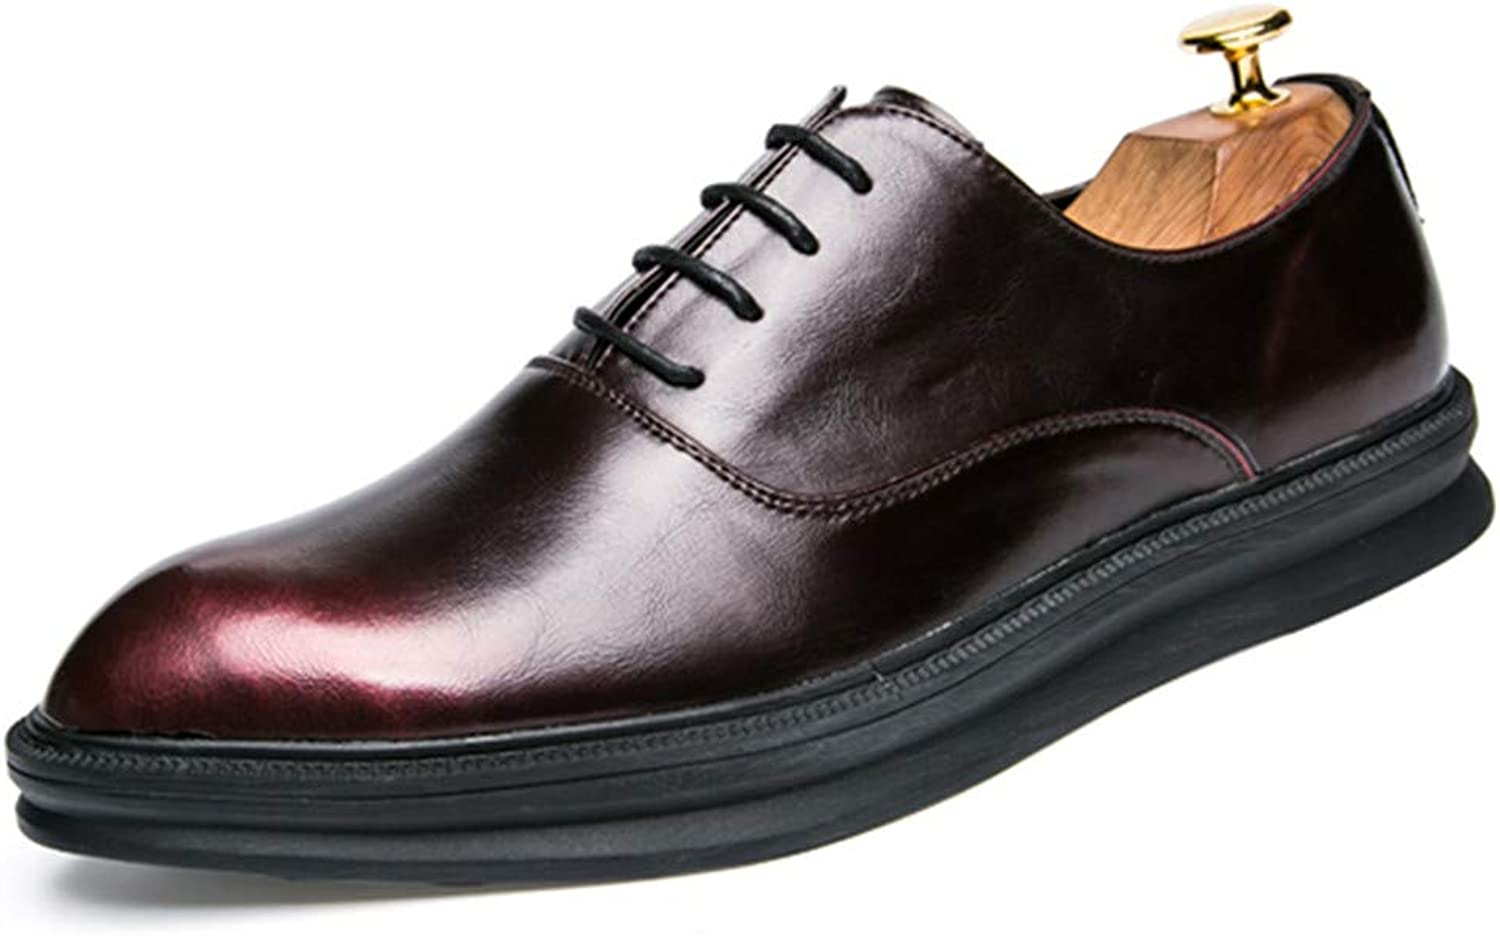 Z.L.F shoes Men's Business Oxford Casual Classic Retro color Contrast Comfortable Outdoors Formal shoes Leather shoes